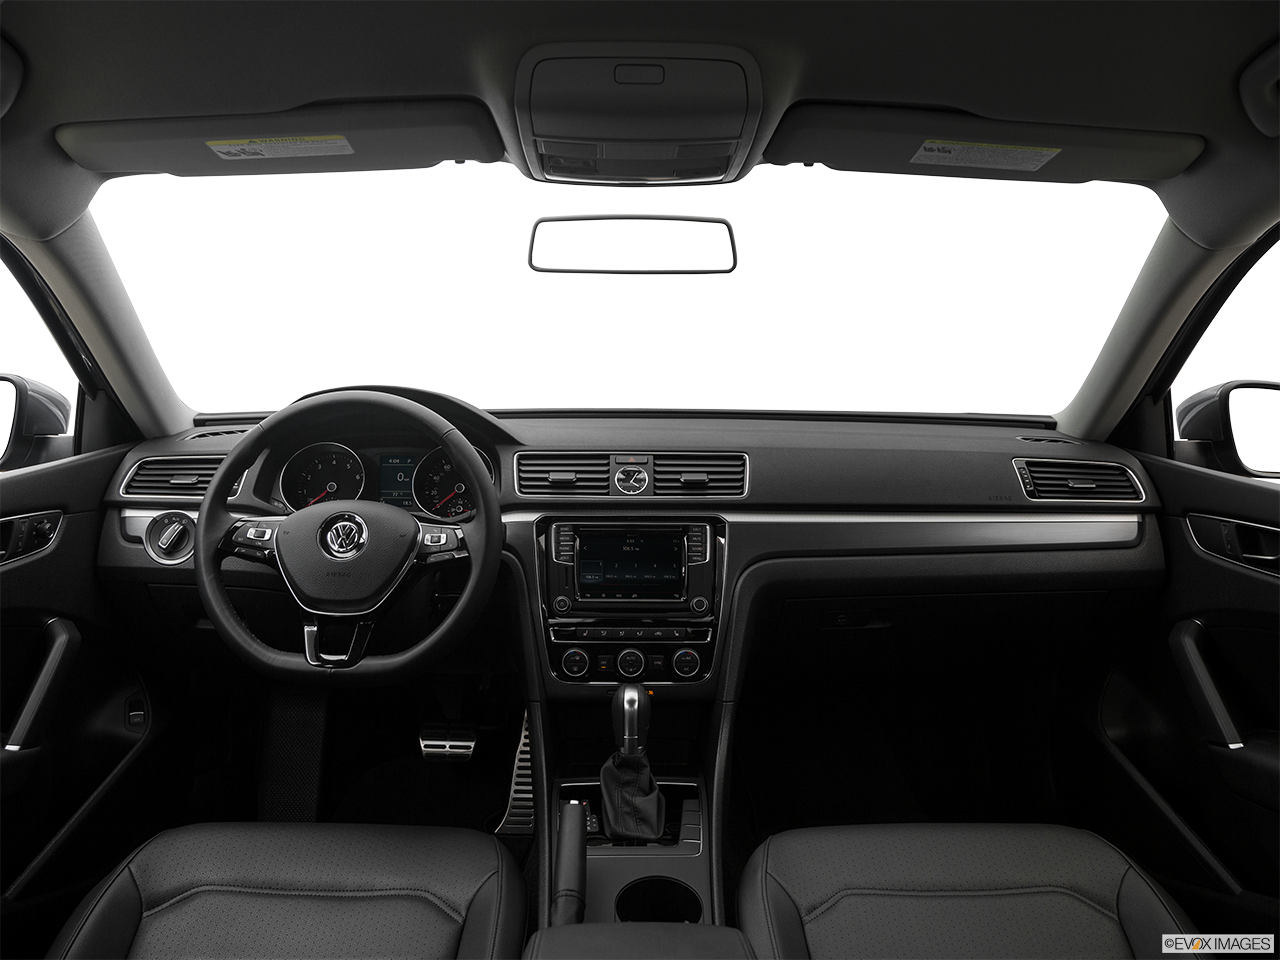 Interior View Of 2017 Volkswagen Passat in Franklin